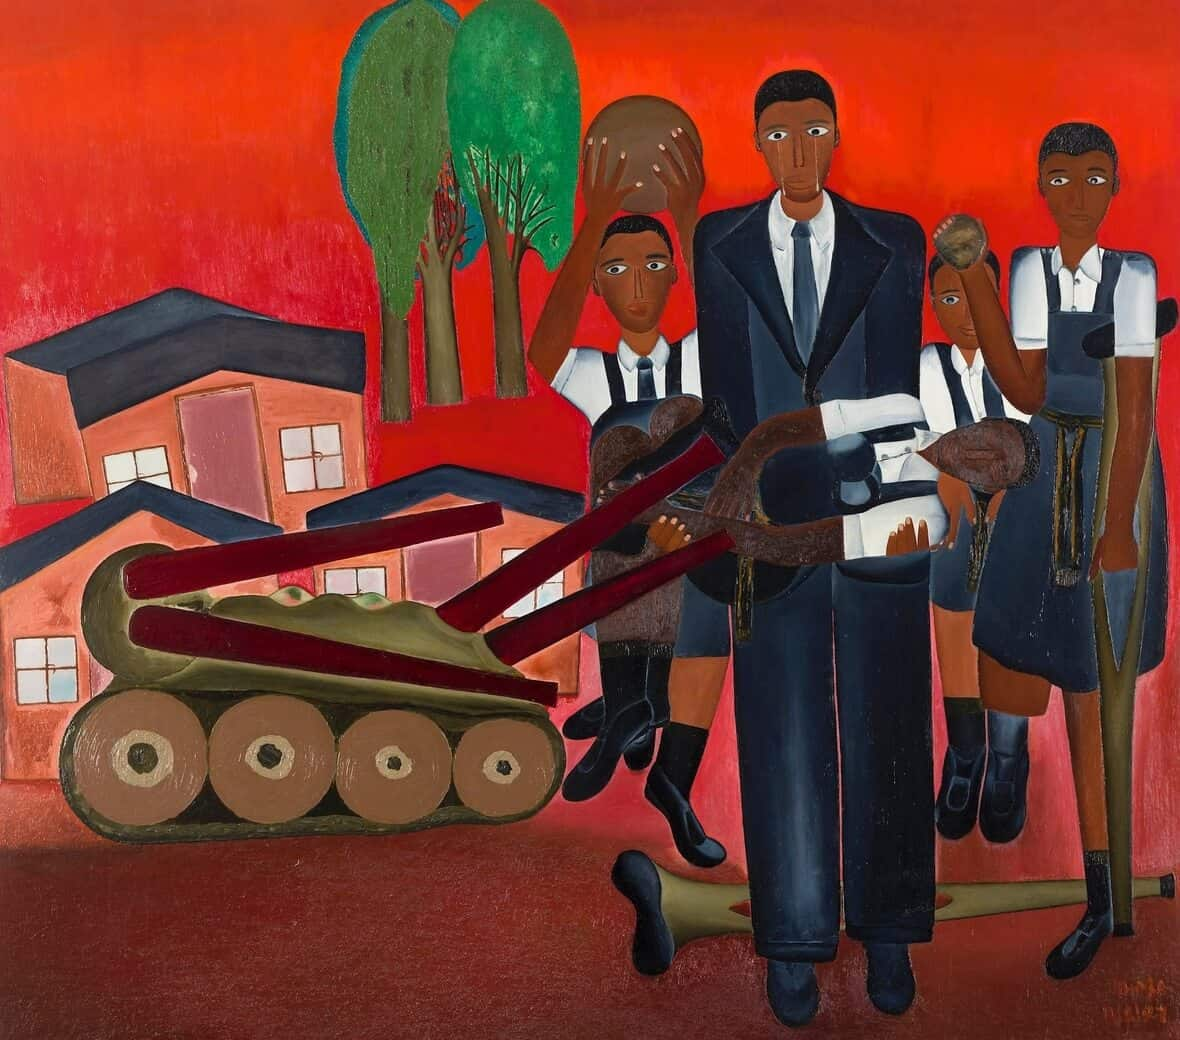 Alfred Thoba, '1976 Riots', signed and dated 13-8-87. Image courtesy of Kalashnikovv Gallery & FNB Art Joburg.